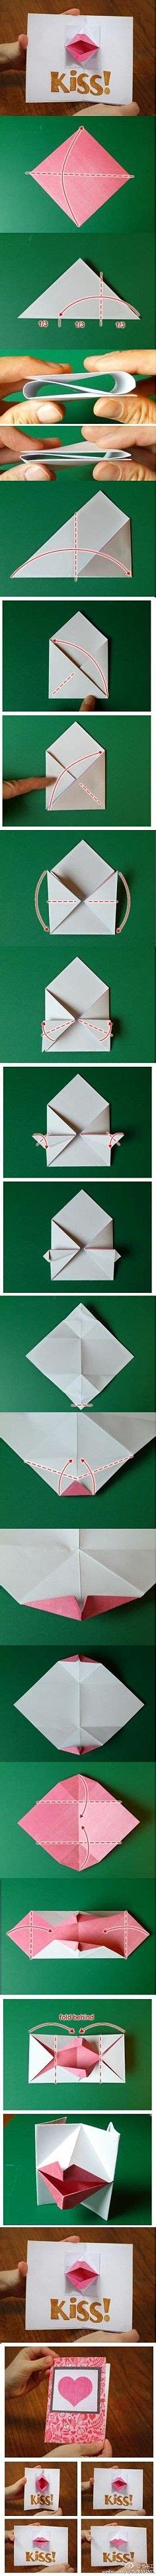 Waterproof Origami Paper - 90 best origami images on